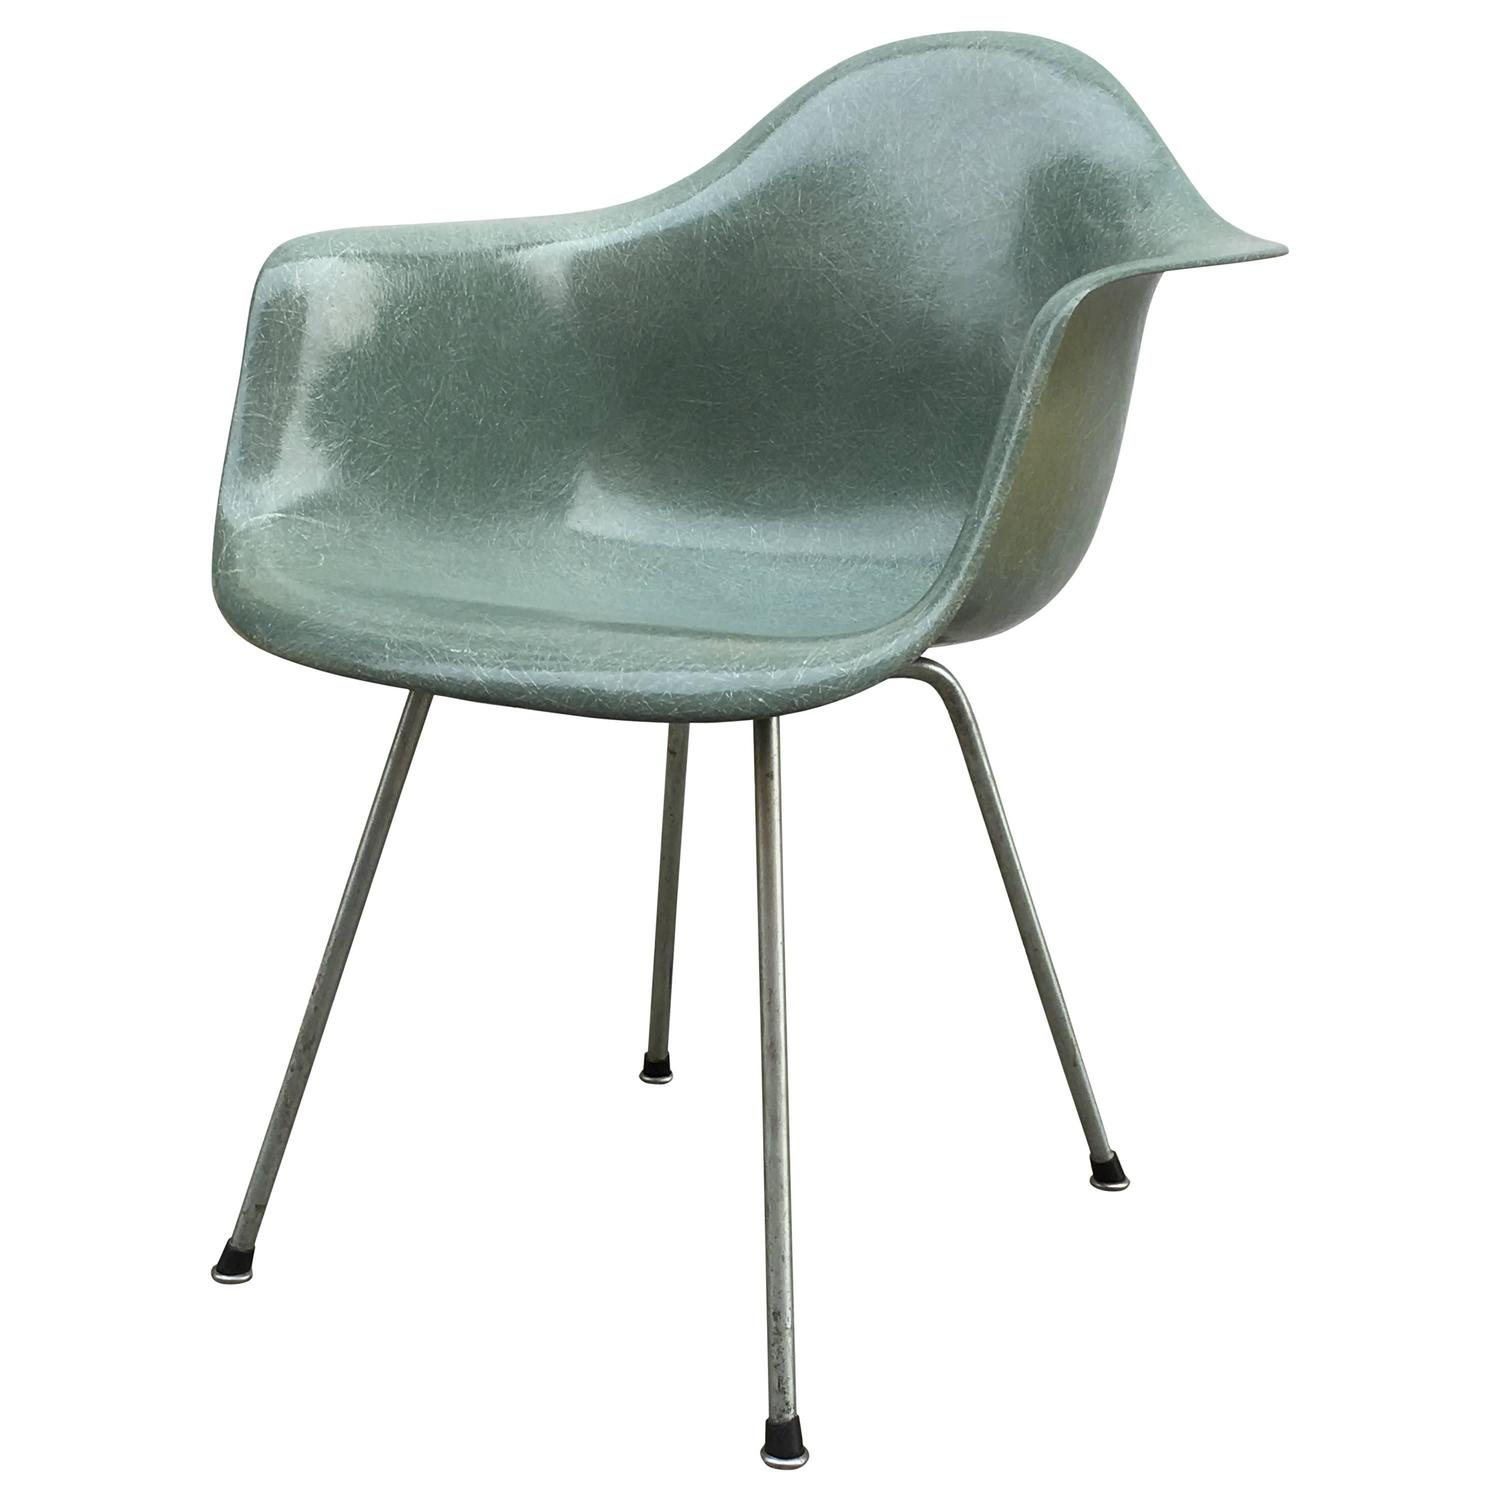 Eames Zenith Seafoam Green DAX Dining Chair For Sale at ...